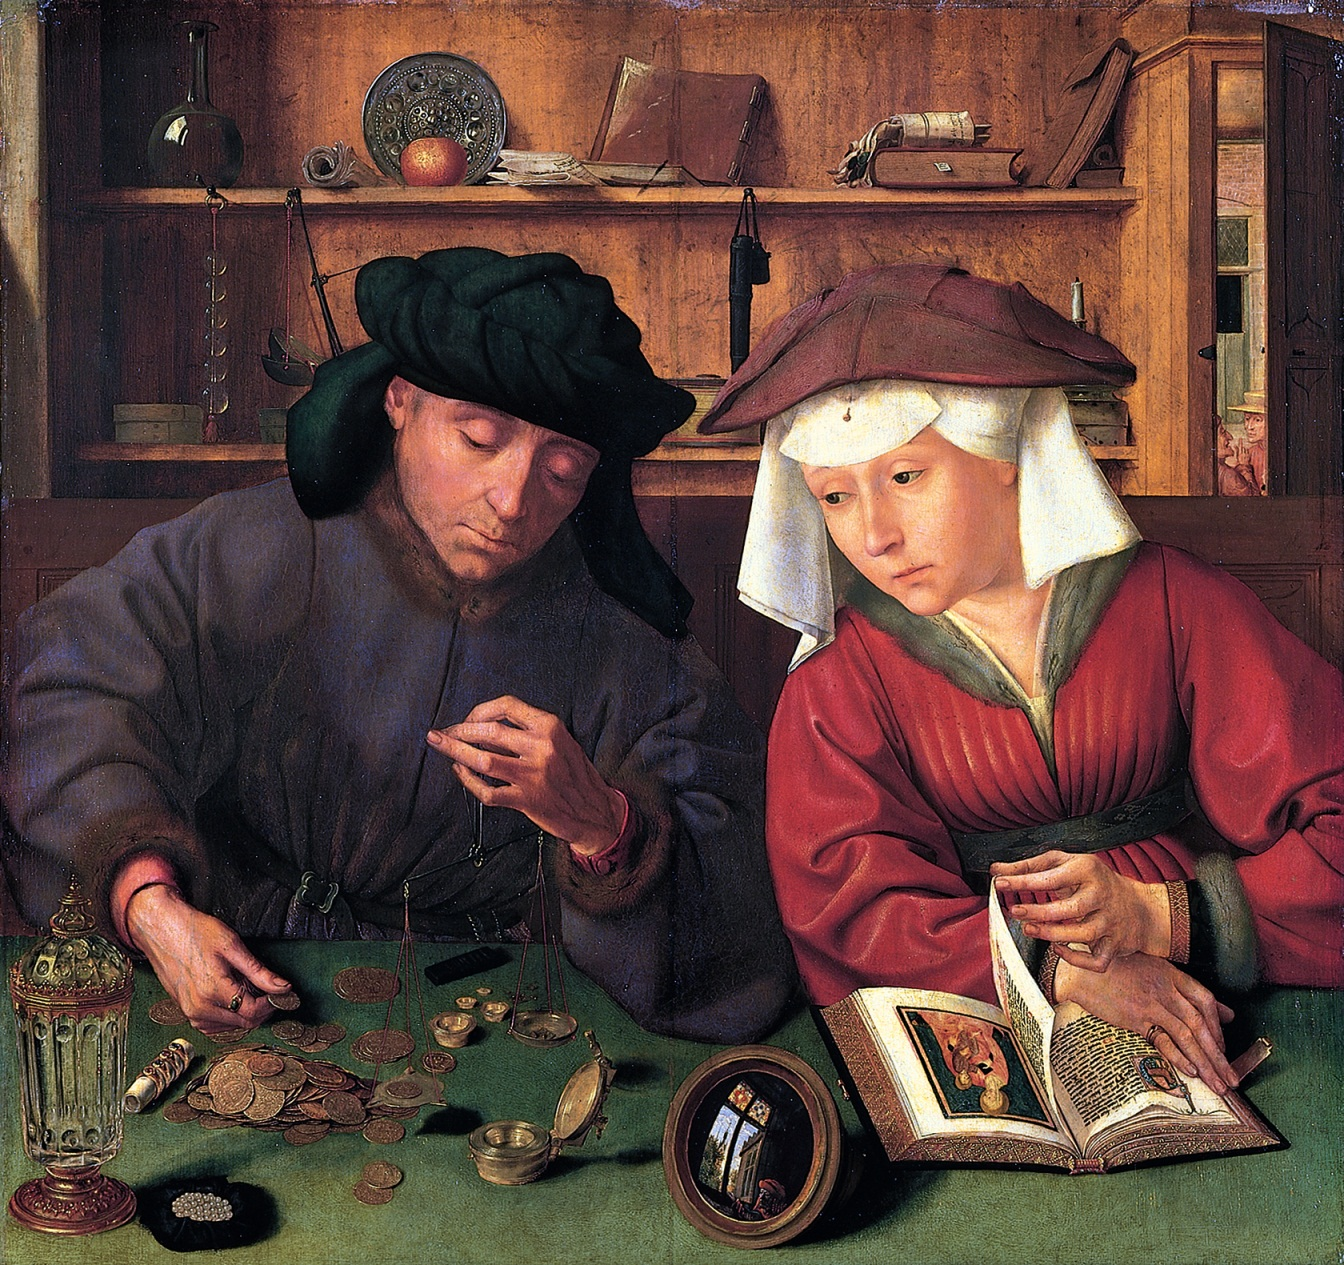 The Money Lender and His Wife (Quentin Metsys, 1514)